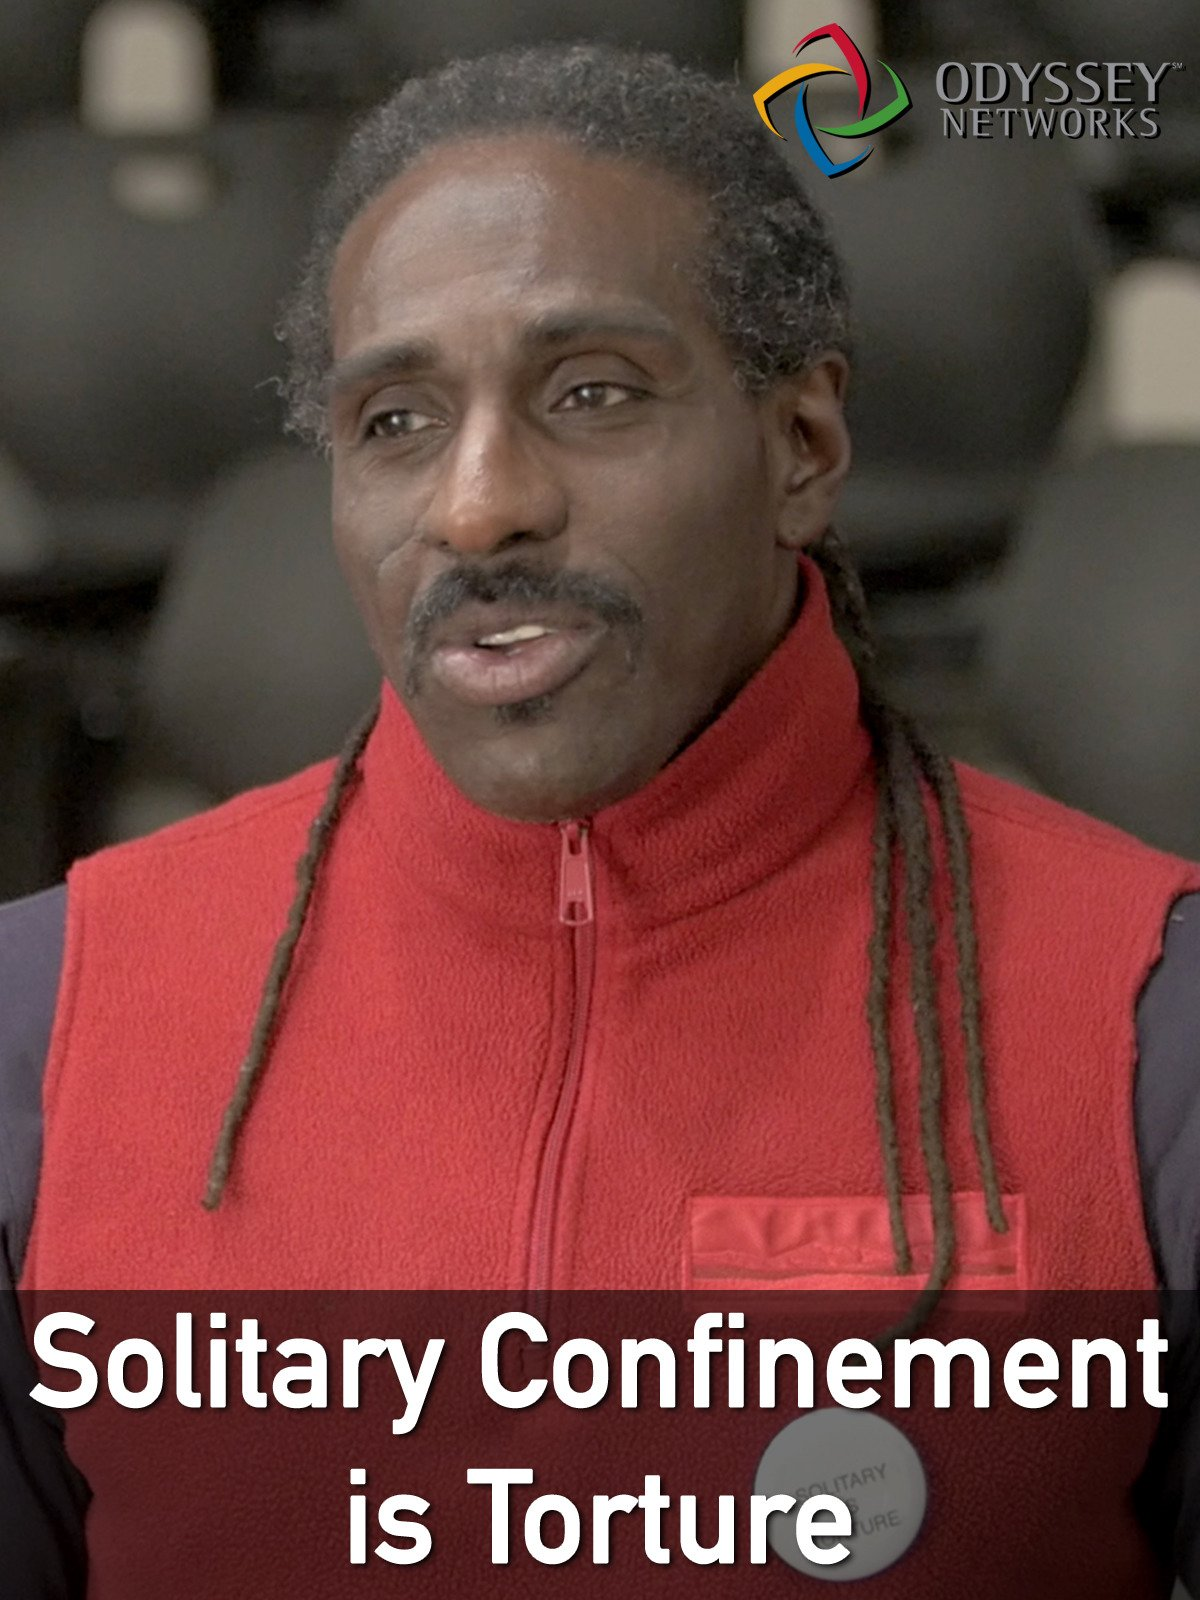 Clip: Solitary Confinement is Torture